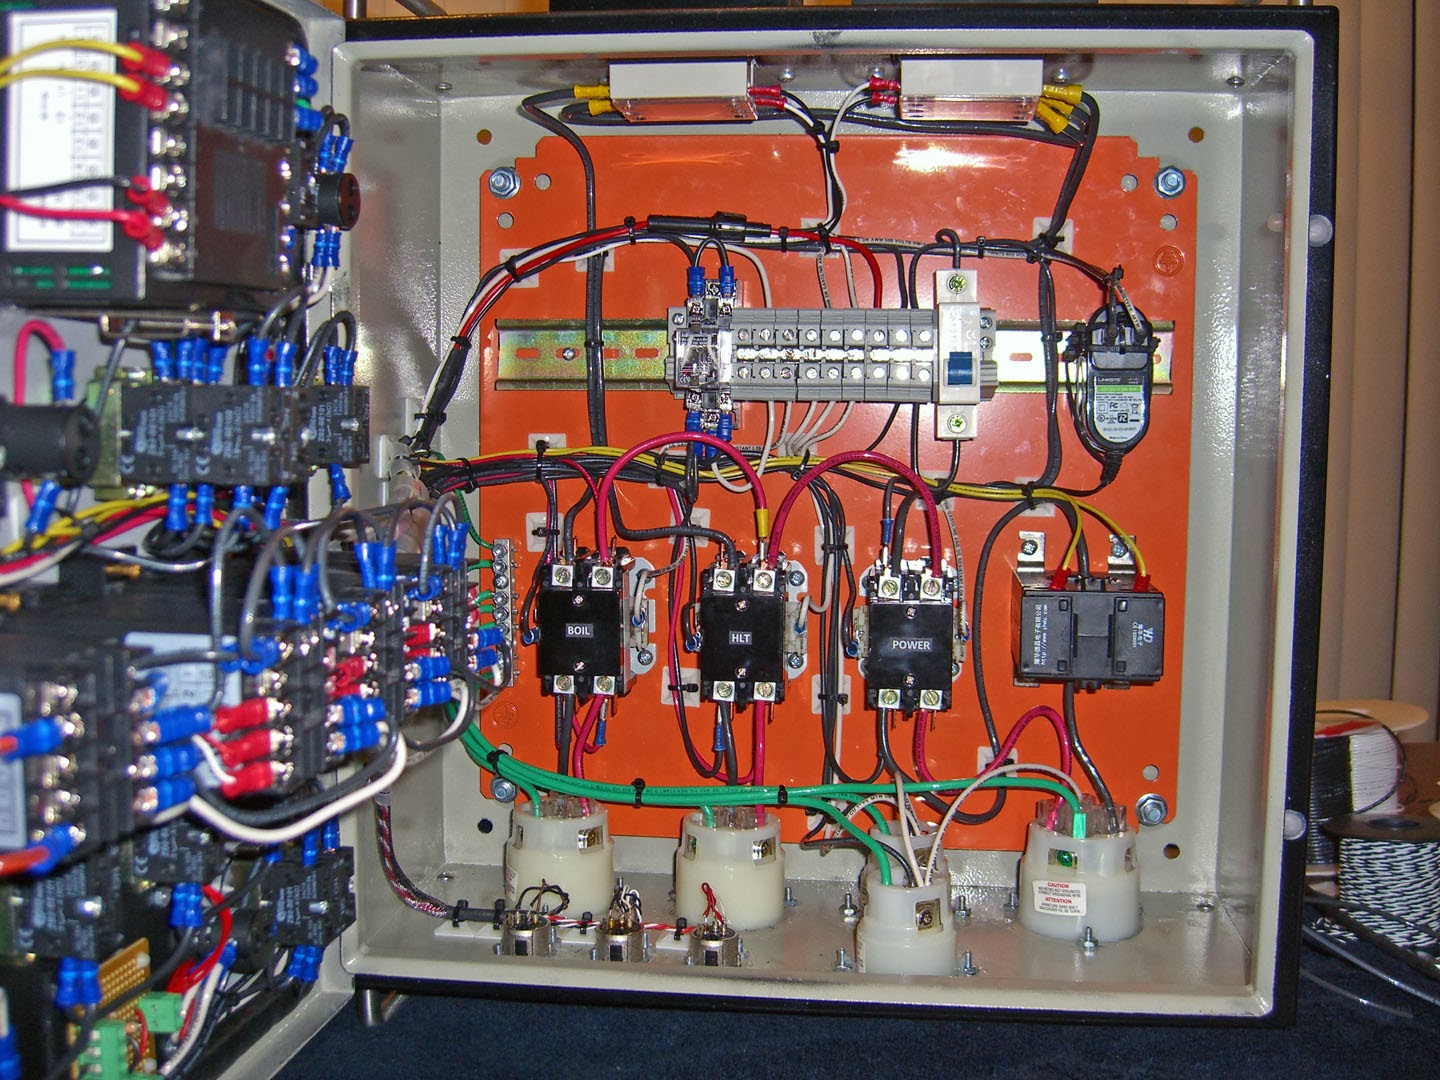 yacht wiring diagram rotten s electric brewery control panel    wiring    done  rotten s electric brewery control panel    wiring    done